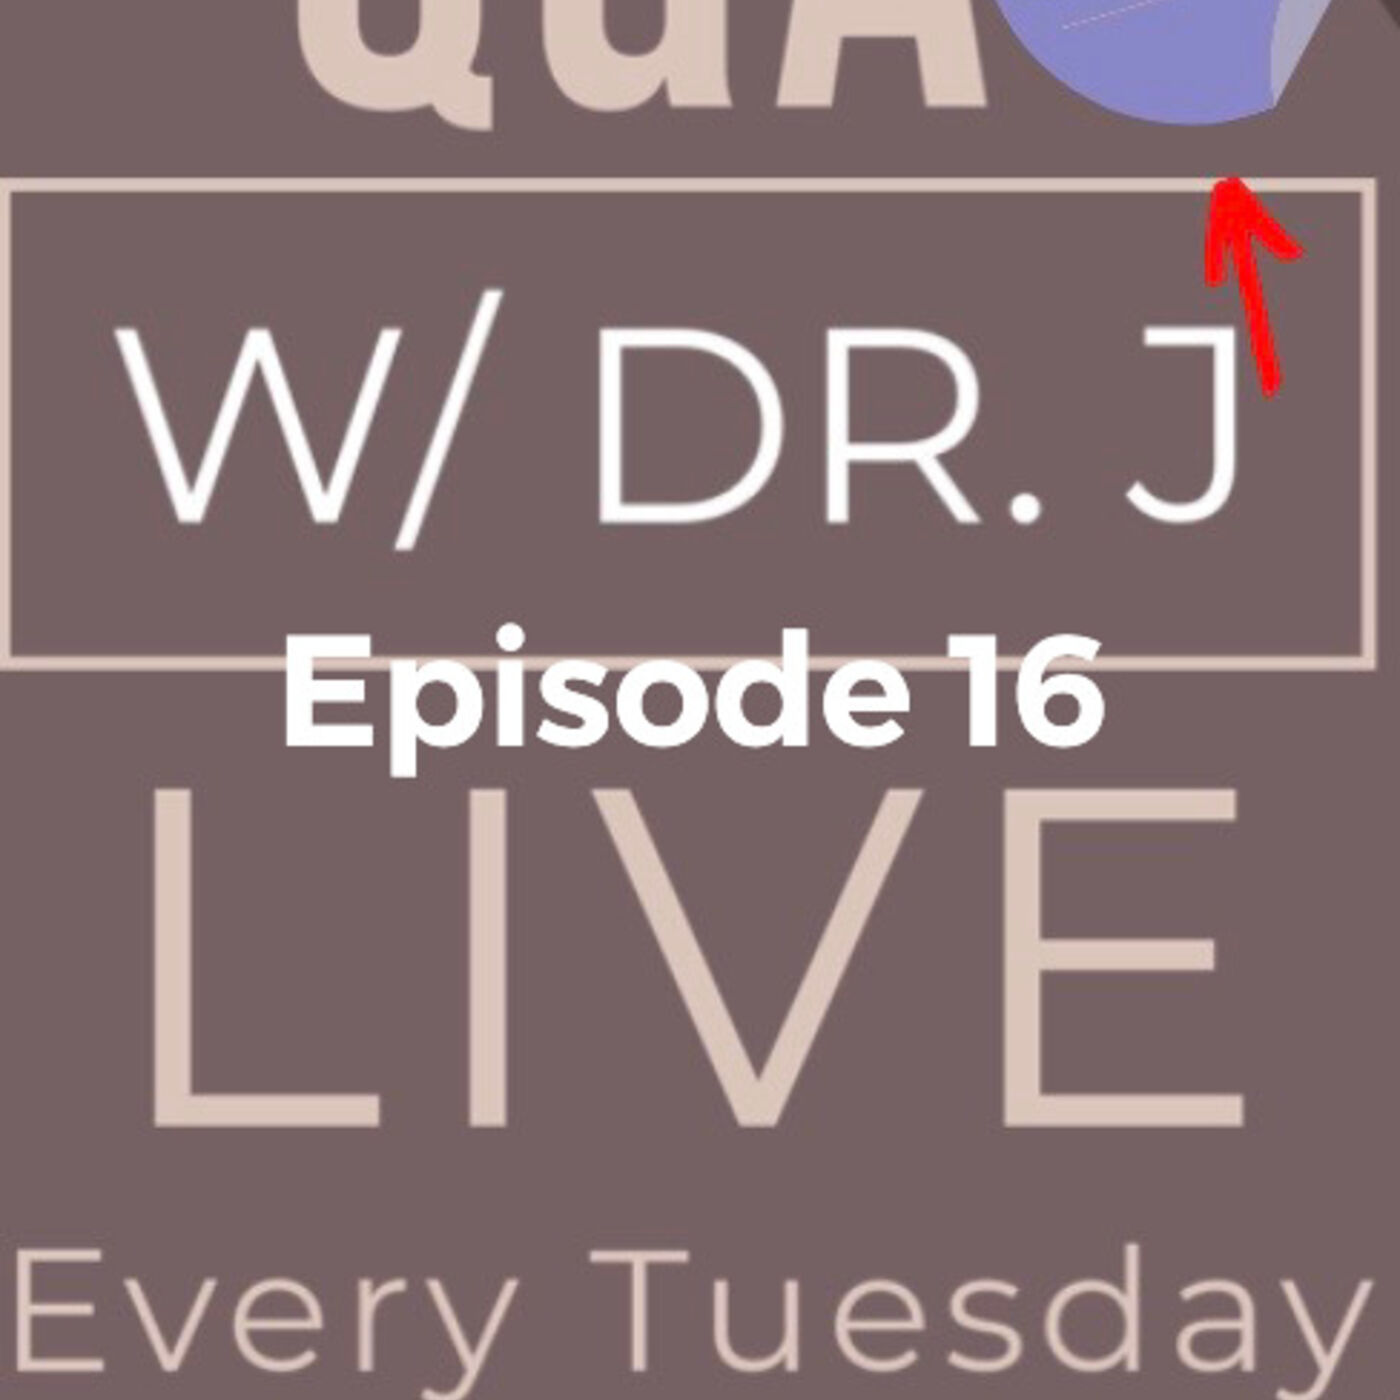 EP 16 Q&A w/ Dr J - What is Capsular contracture ?